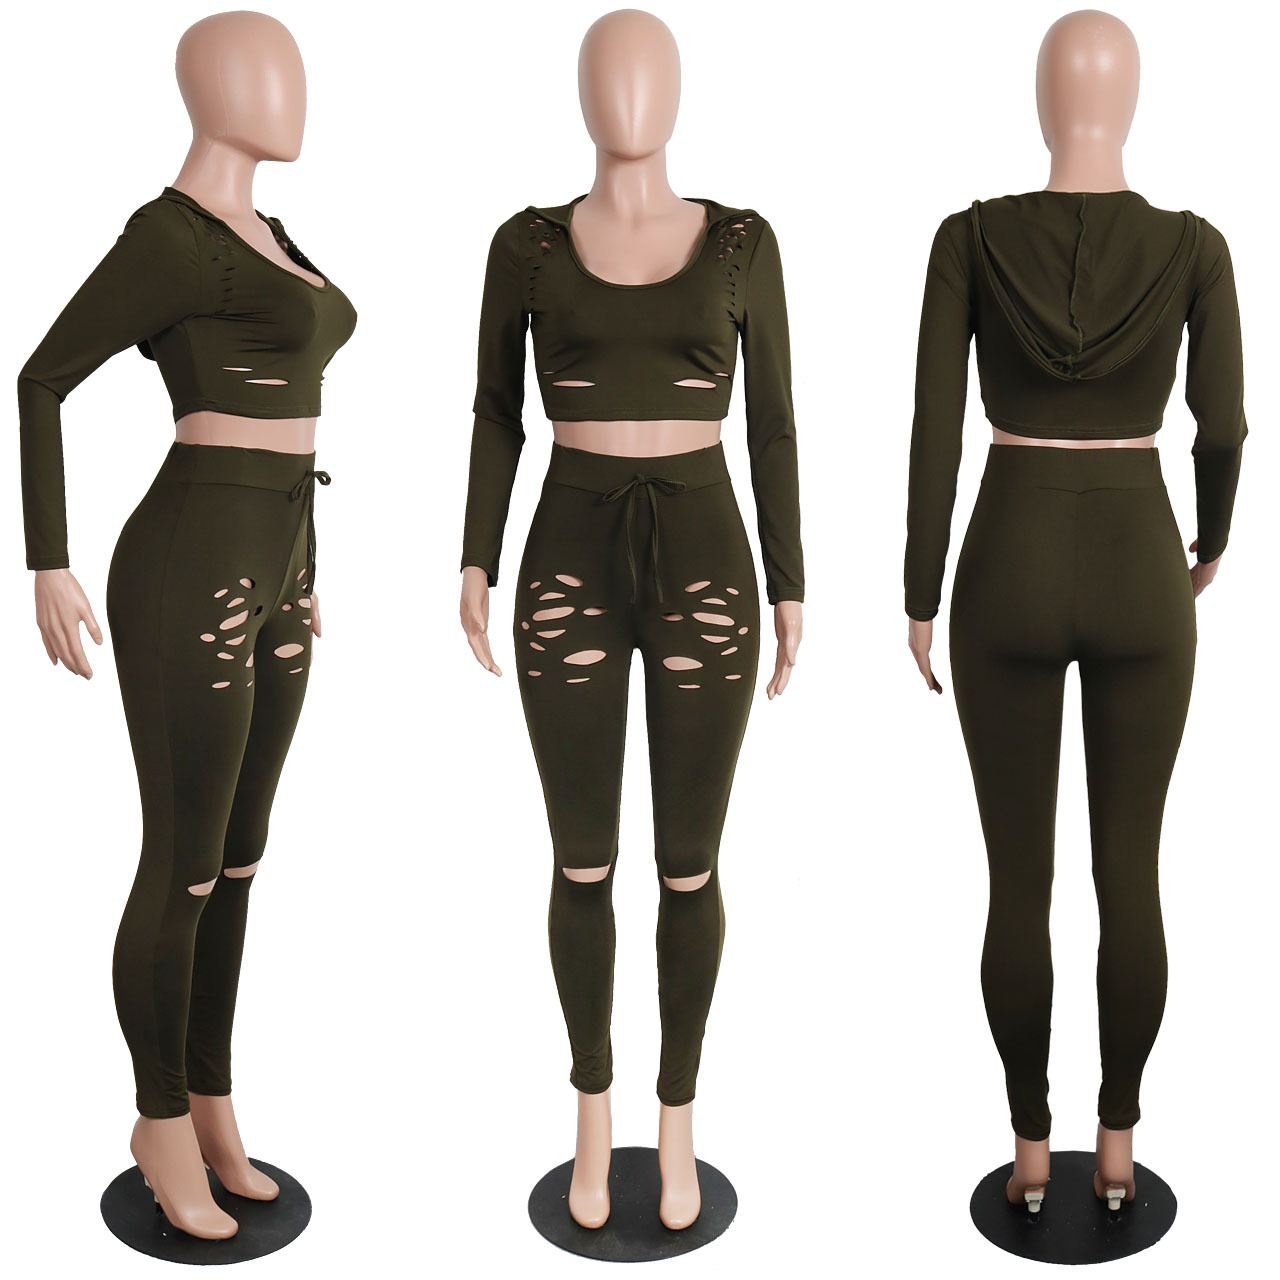 Hole Tracksuits 2 Piece Streetwear Lady Long Sleeve Slim Cropped Hoodies And Drawstring Ankle-Length Pants set